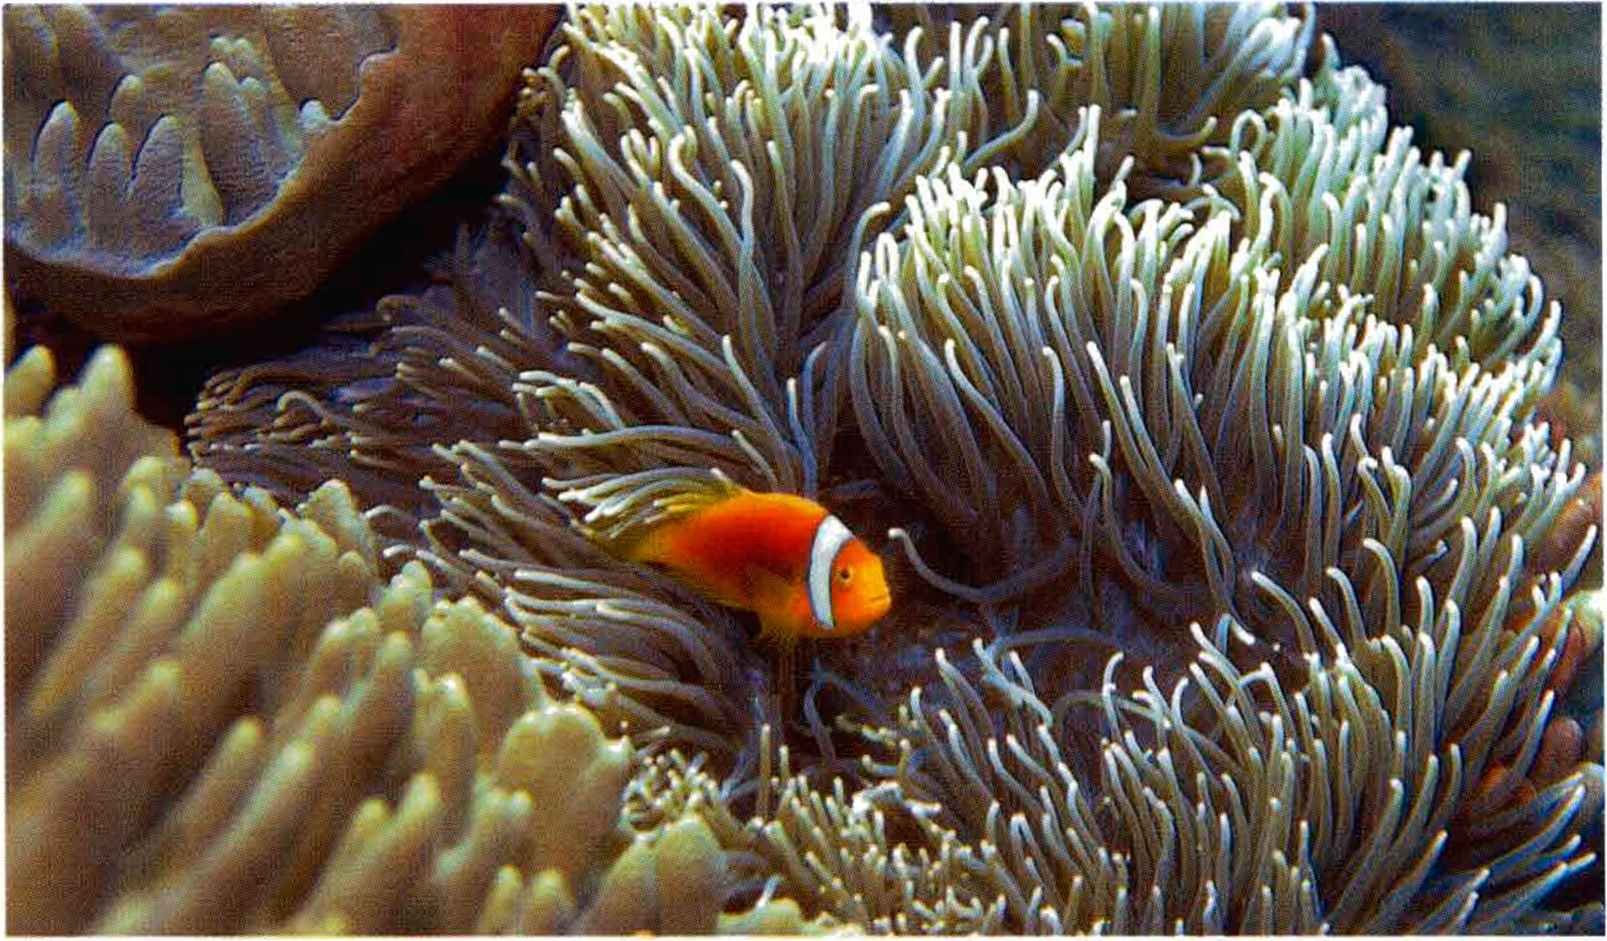 Amphiprion Chrysopterus Solomon Islands